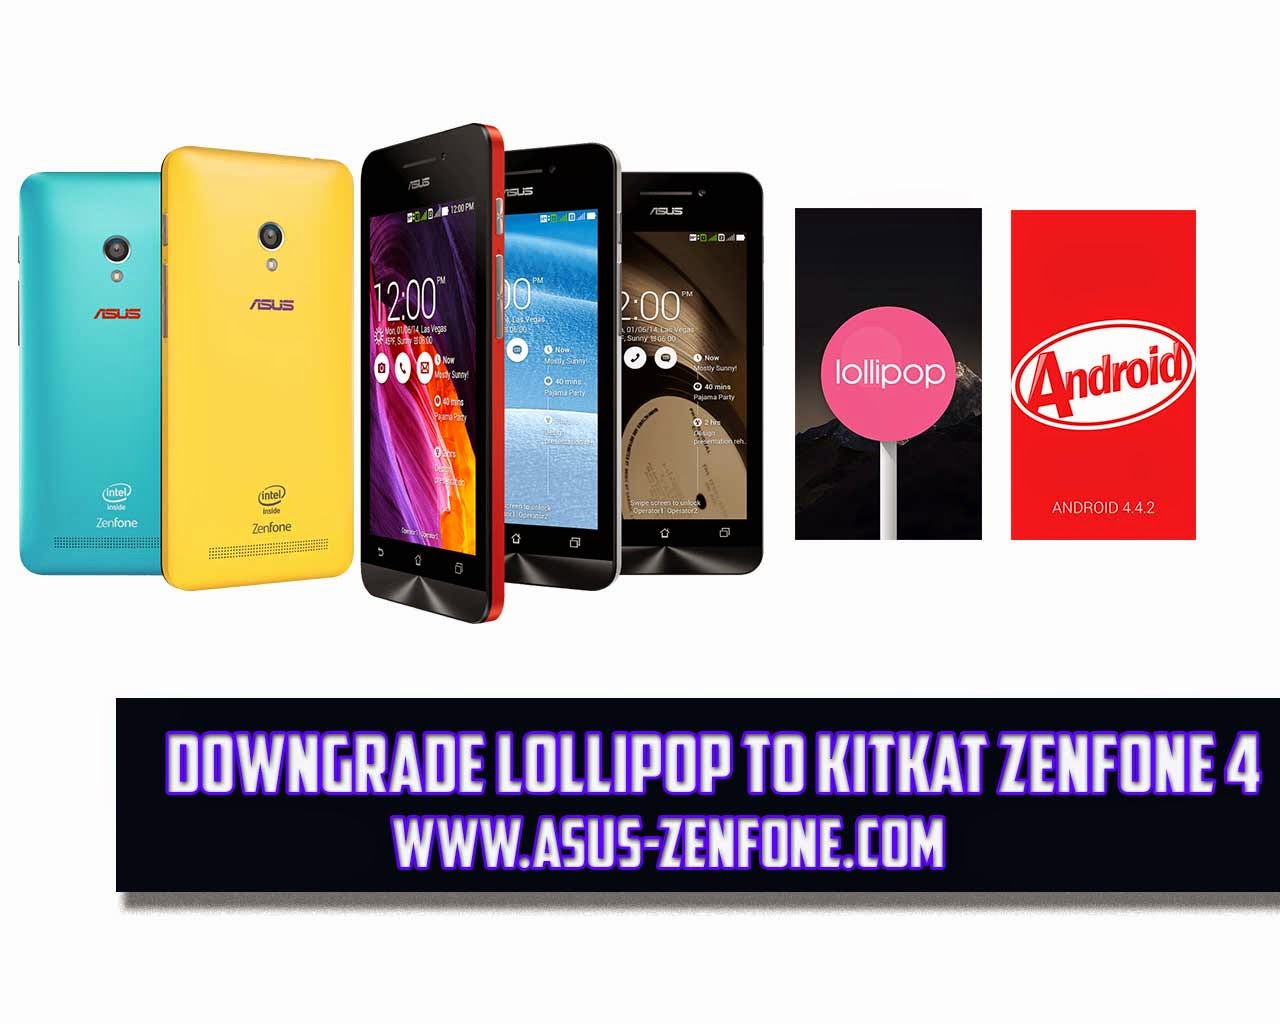 Today ASUS Zenfone Blog will show you How to Downgrade ASUS Zenfone 4 ...